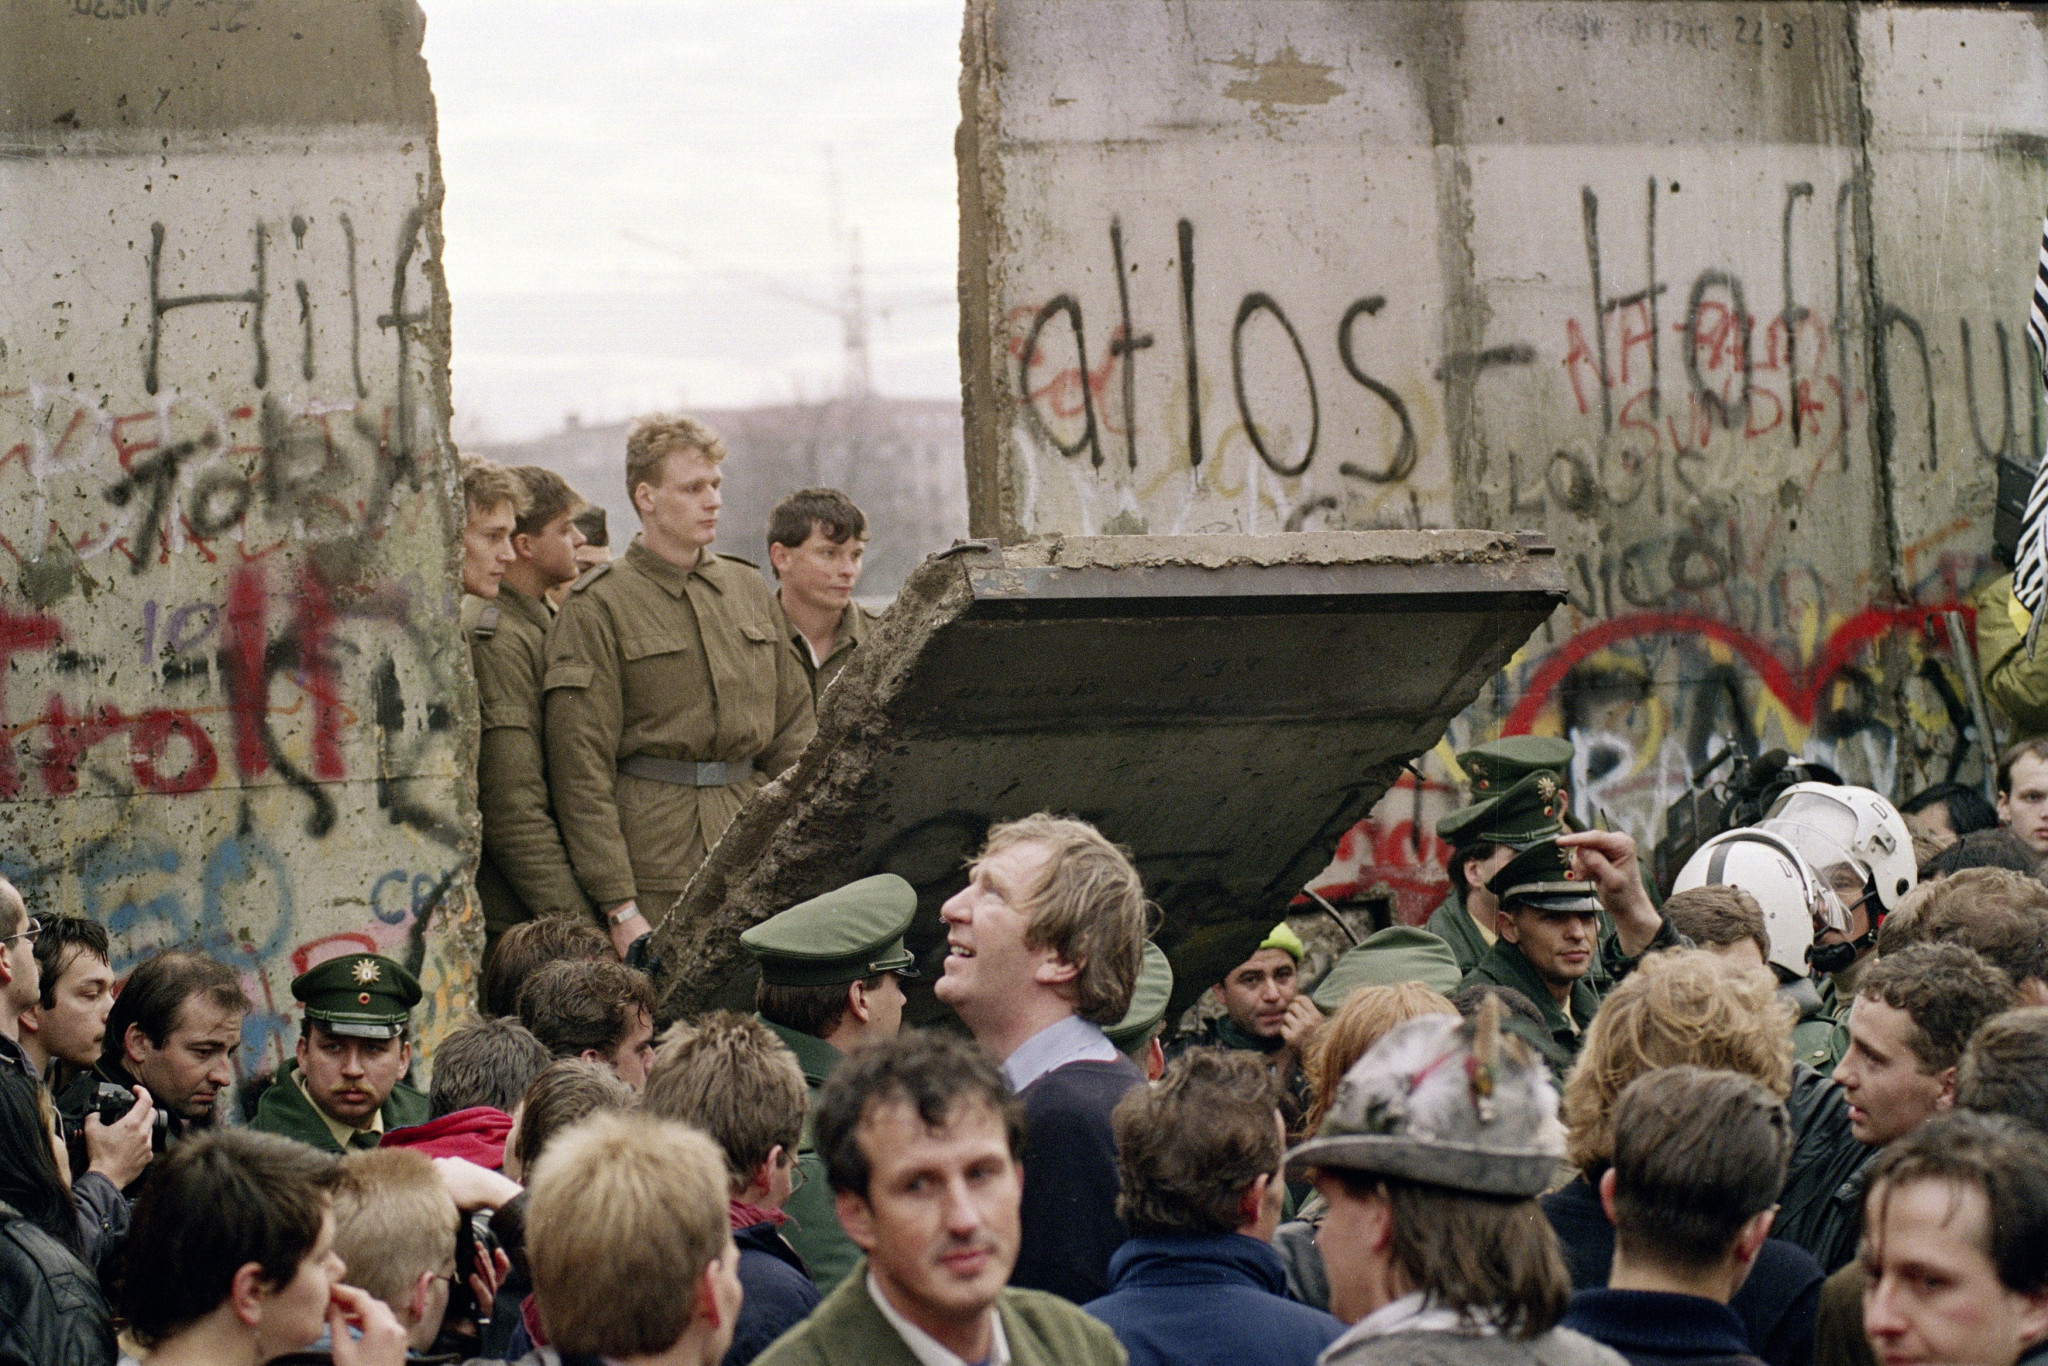 The collapse of the Berlin Wall 30 years ago led to a seismic change across the world ©Getty Images